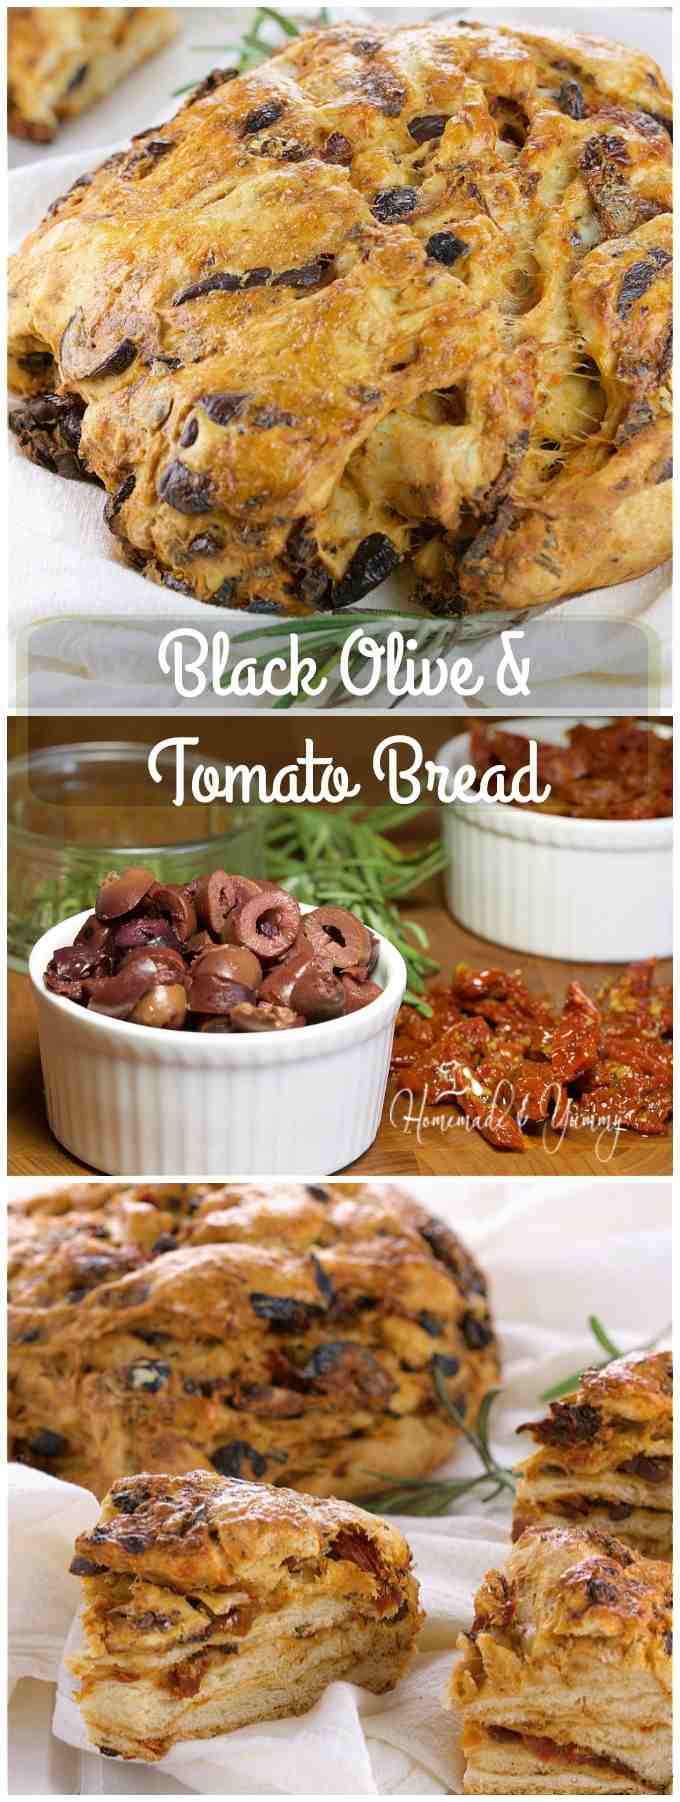 Black Olive & Tomato Bread is full of savoury flavour packed with pieces of olives and sun-dried tomatoes. | homemadeandyummy.com